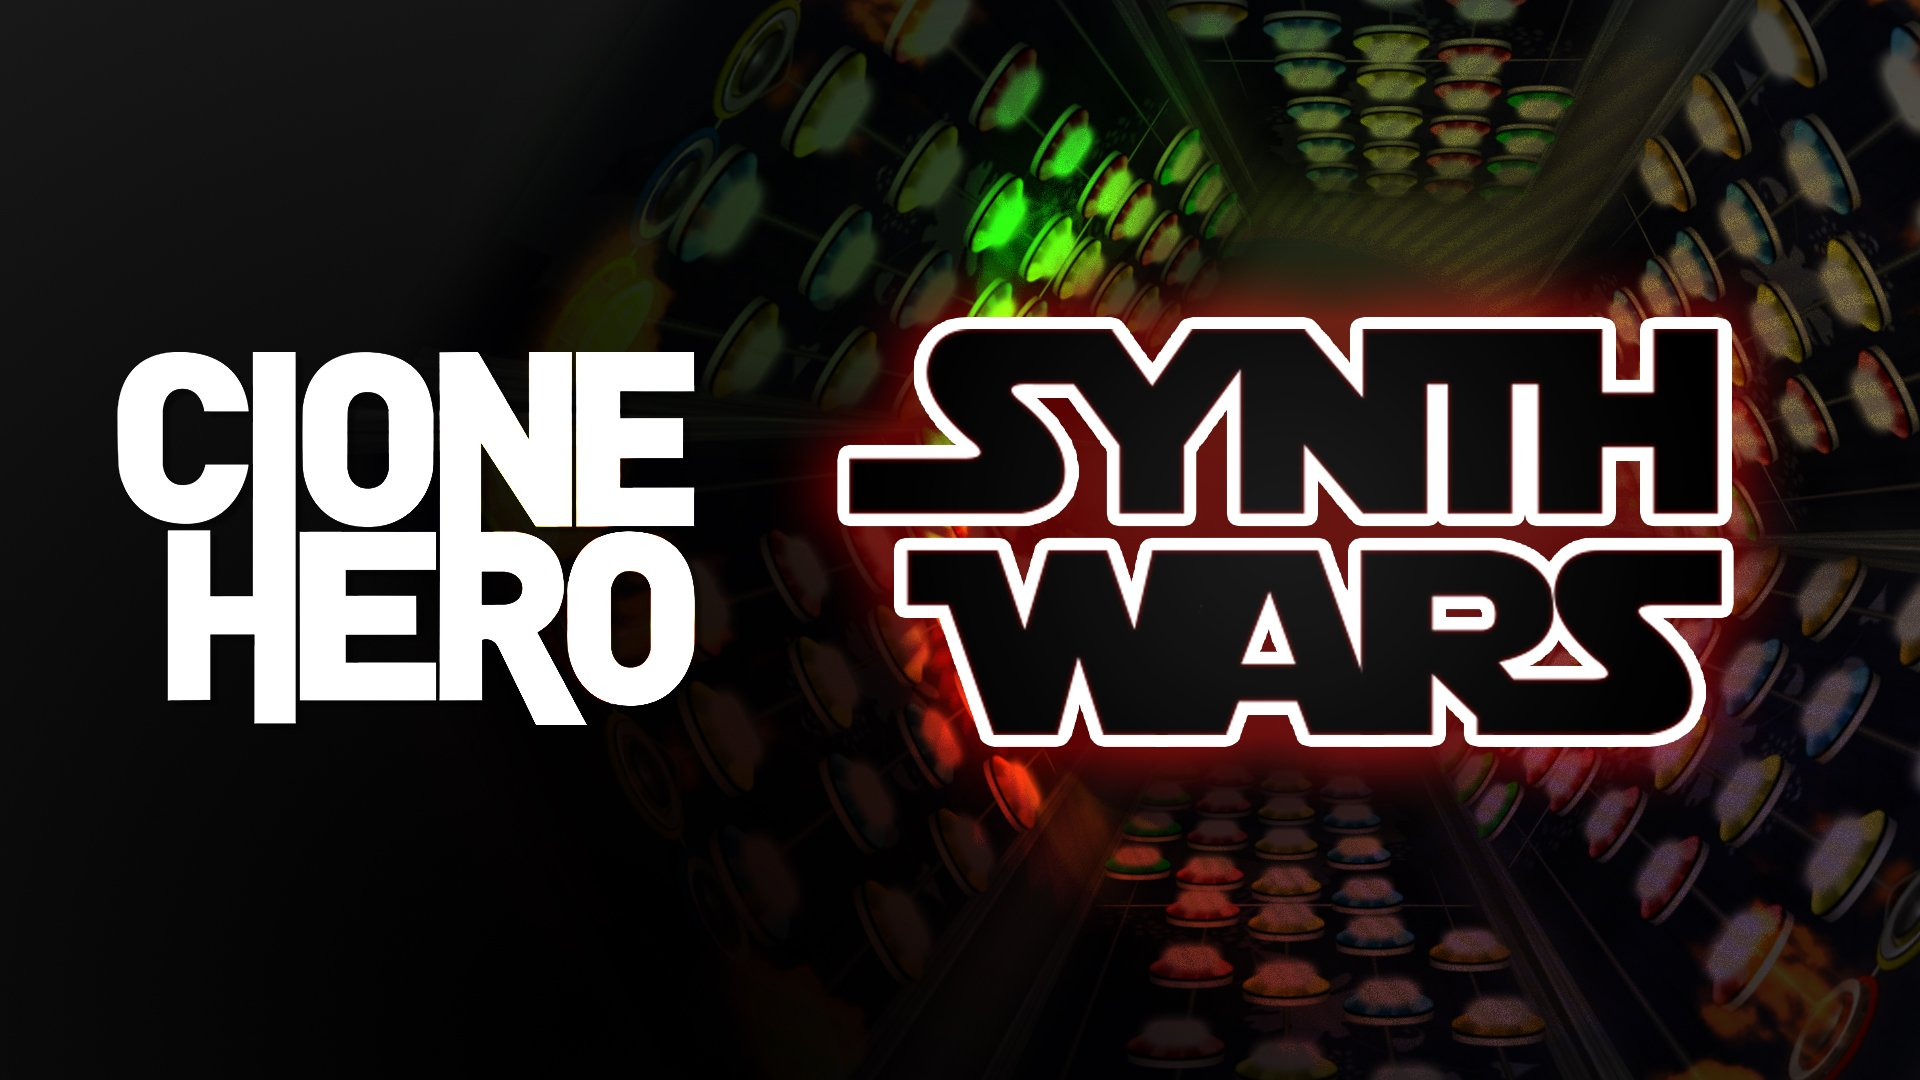 Clone Hero – Synth Wars